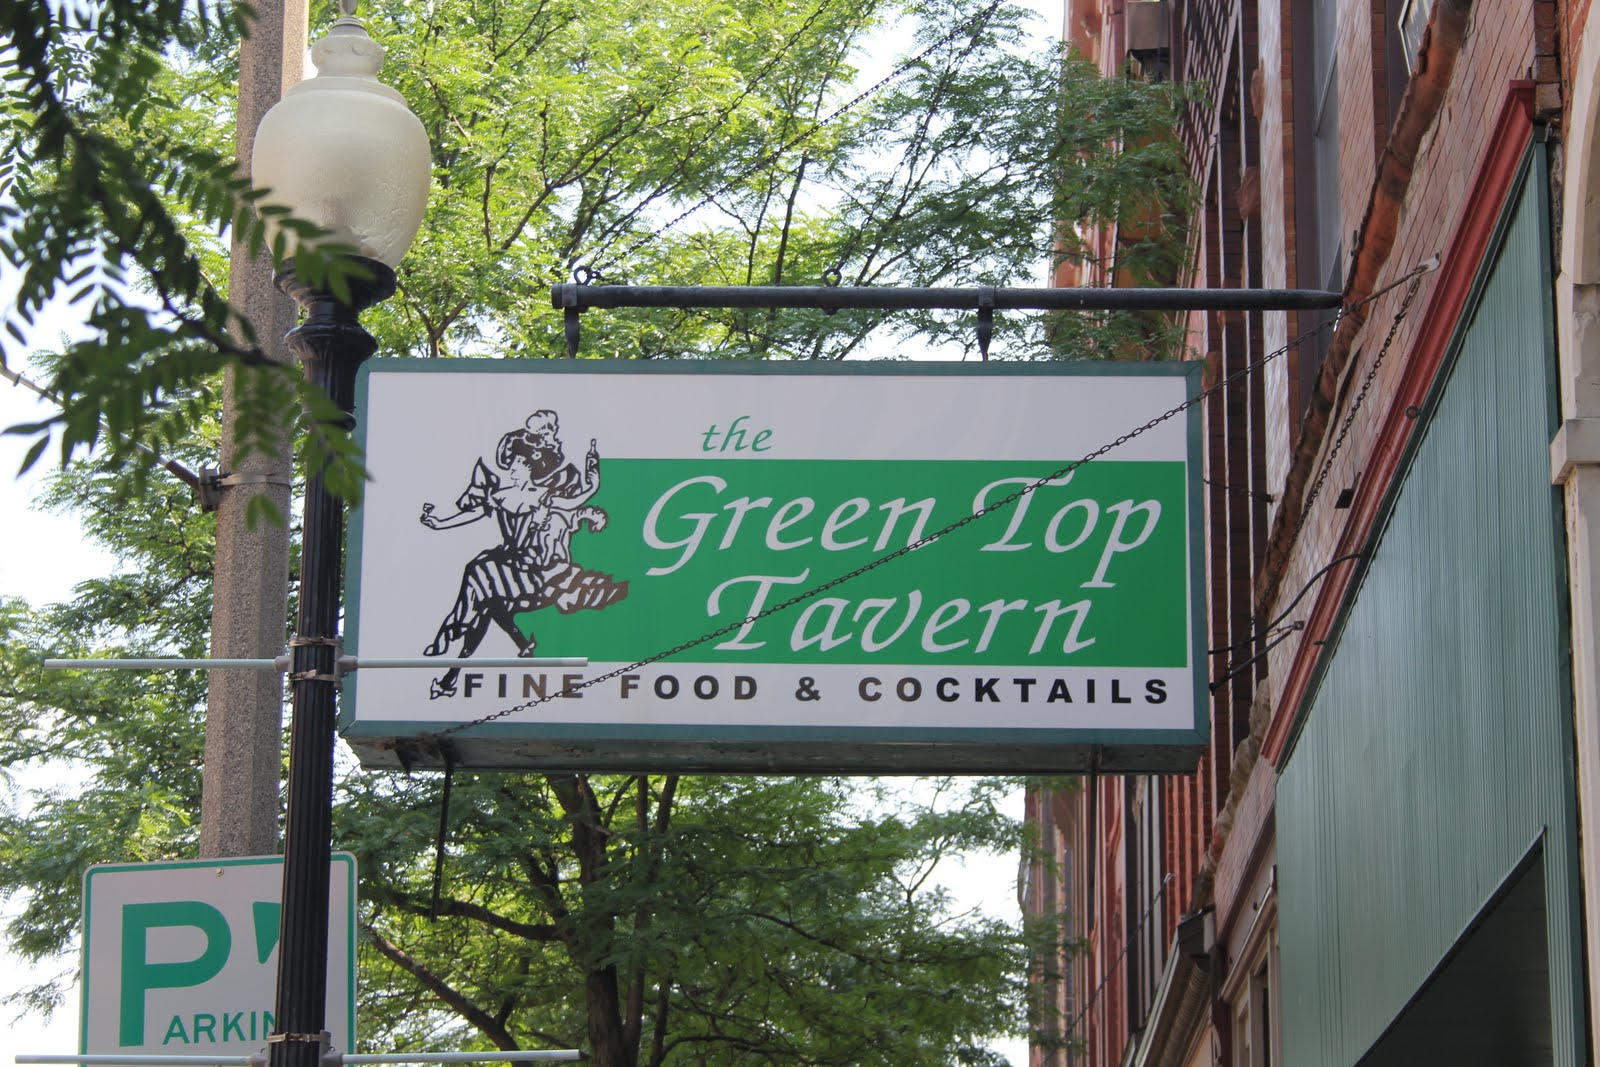 The Green Top Tavern